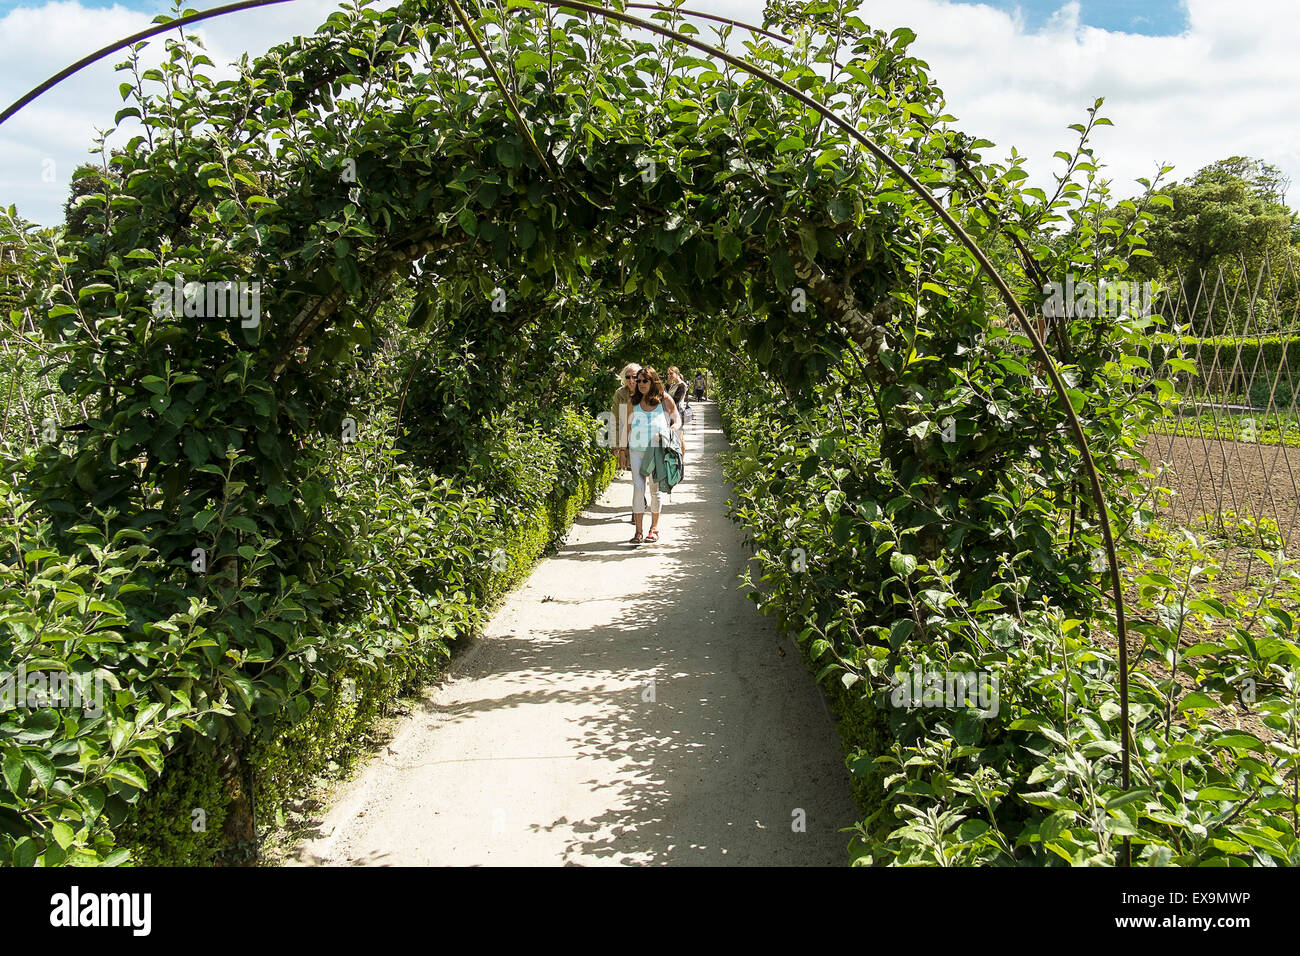 Vegetable garden with covered walkways - An Ornamental Covered Walkway In The Vegetable Garden In The Lost Gardens Of Heligan In Cornwall